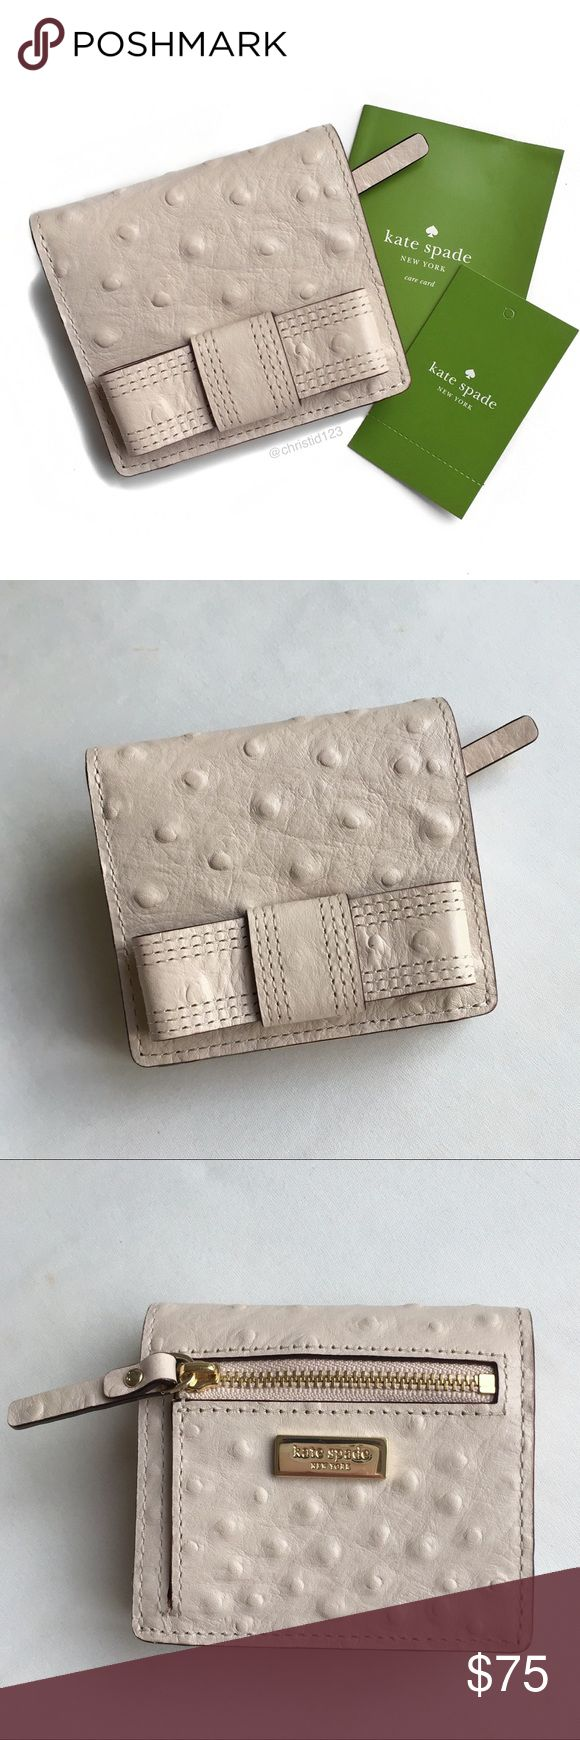 """Kate Spade Serenade Valencia Road Wallet Pebble color classic bow front wallet with 14kt yellow gold plated logo hardware.  Zip coin pocket on back.  Snap closure fold over style.  ID window with 4 card slot pockets inside.  Brand new with tags.  4""""W x 3.5""""H x 1""""D kate spade Bags Wallets"""